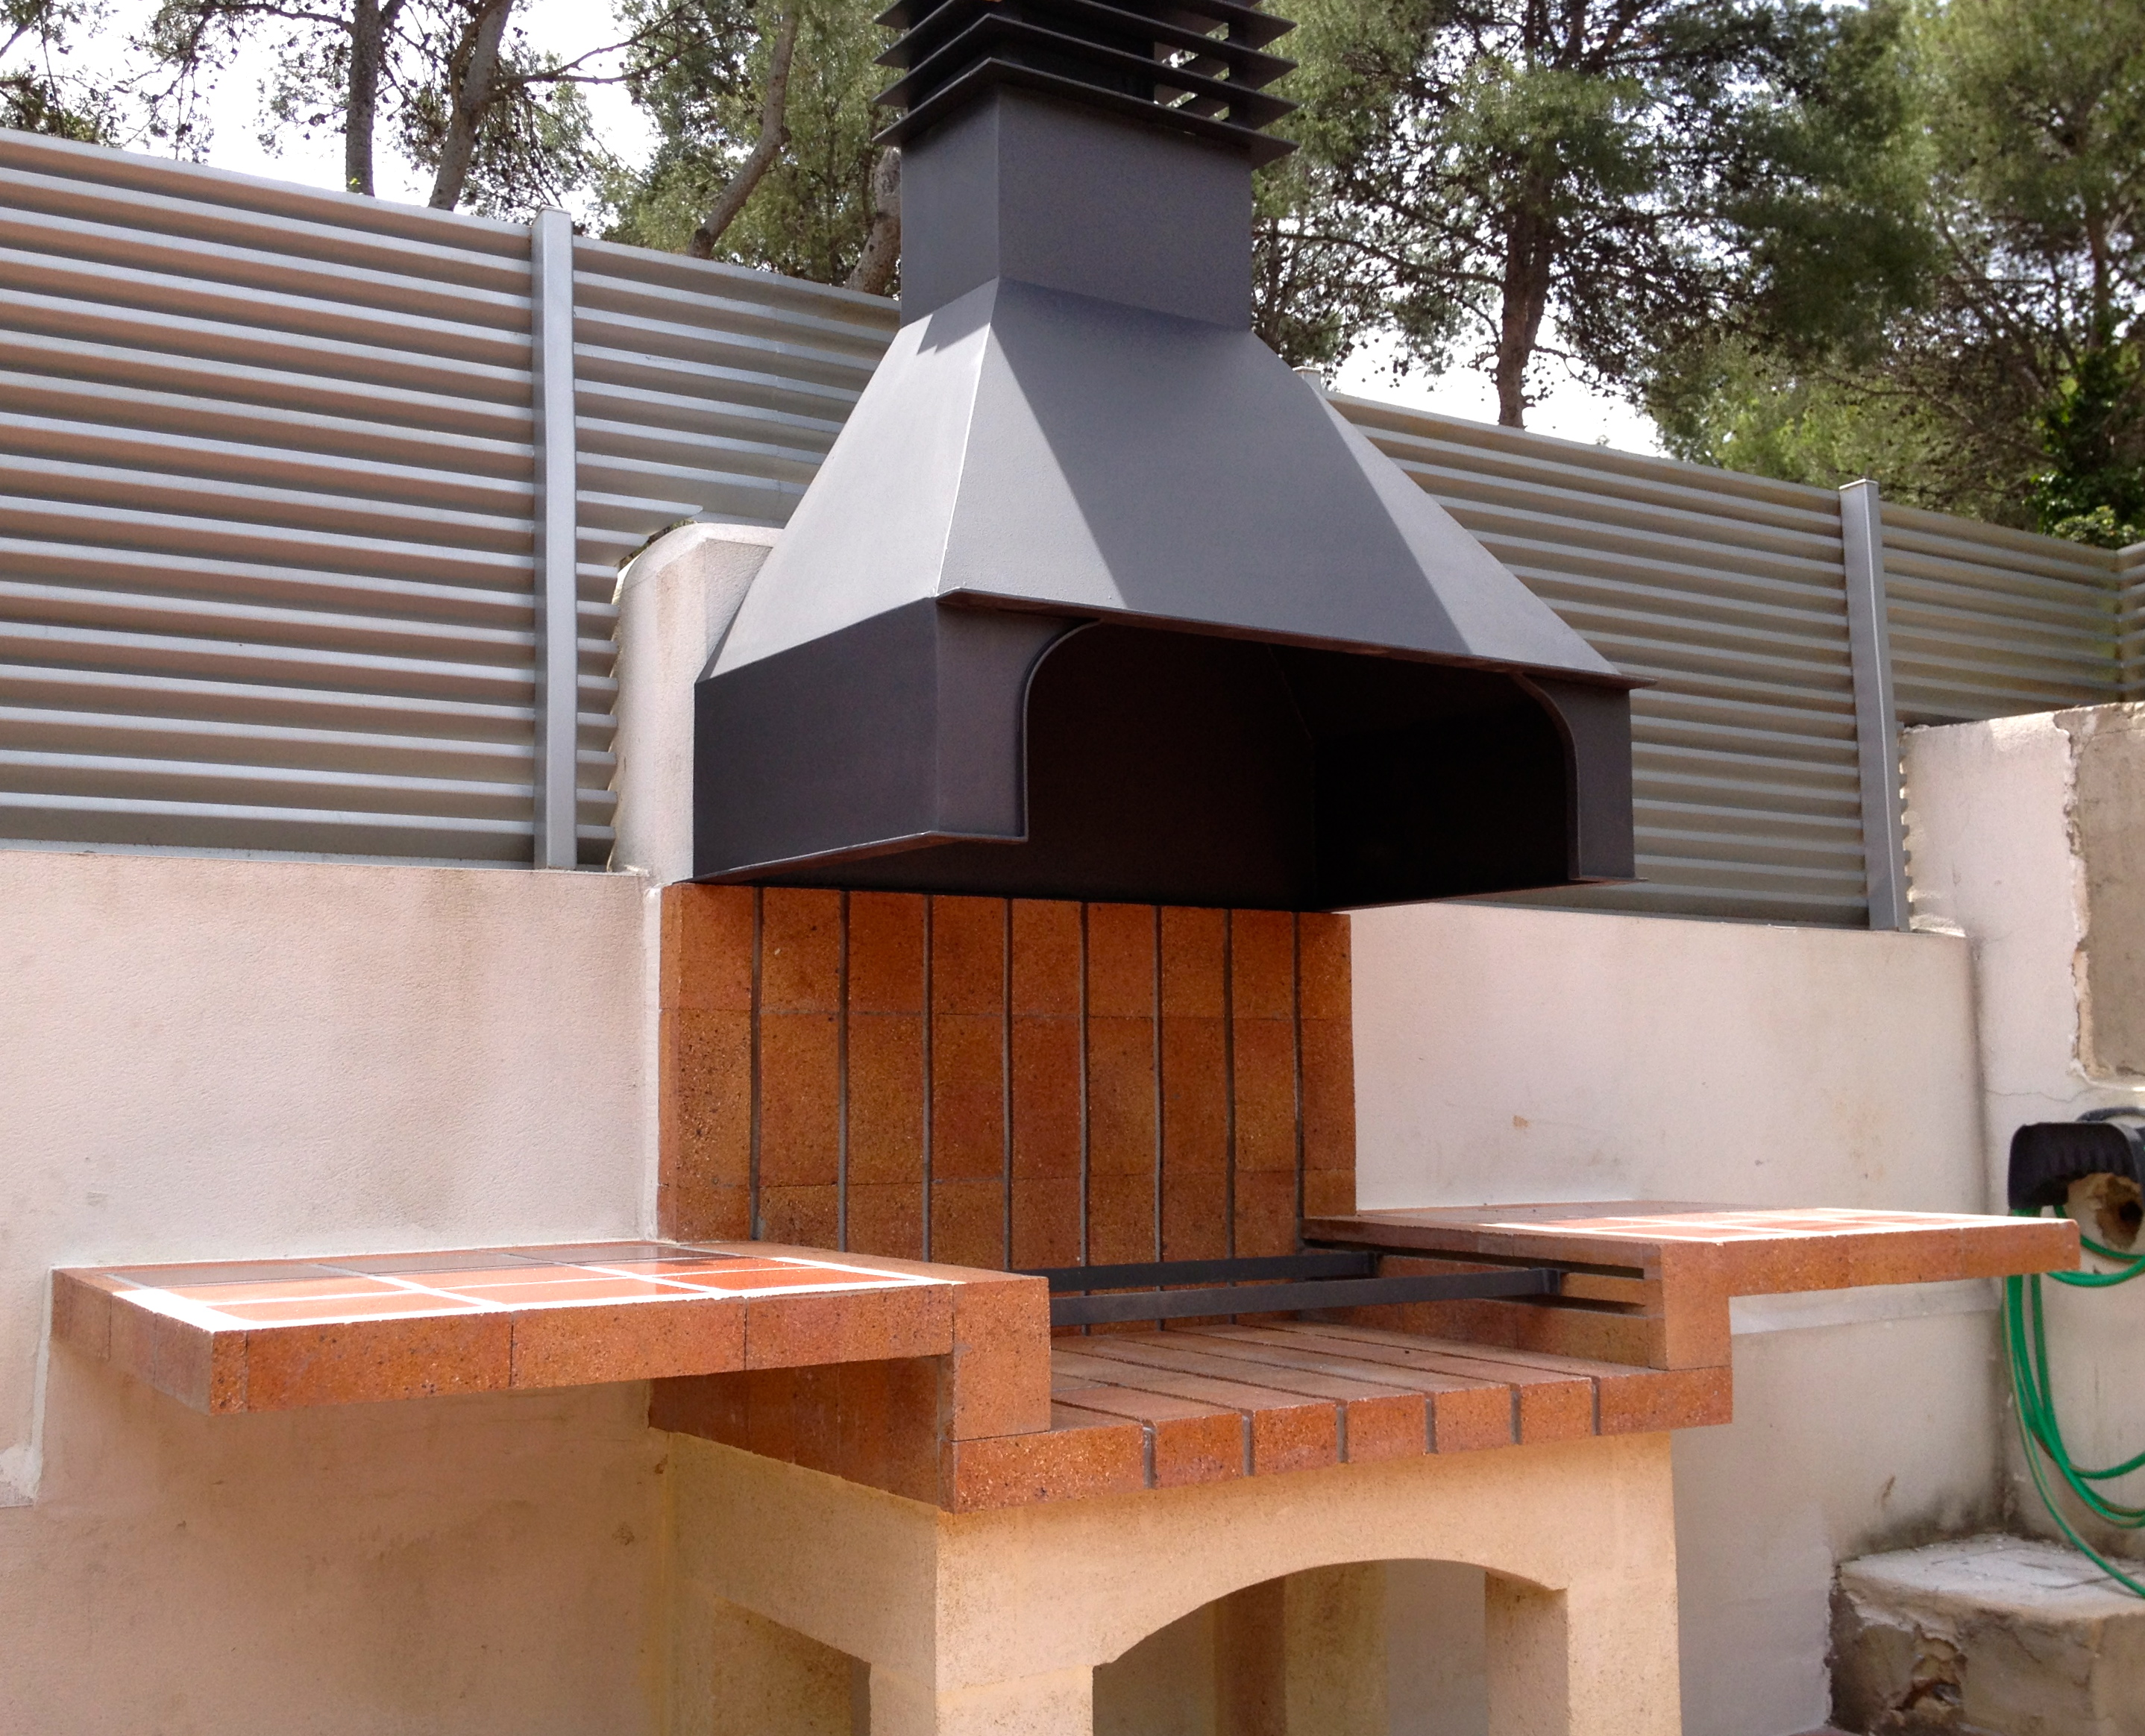 Blog chimeneas s nchez part 2 - Modelos de barbacoas ...